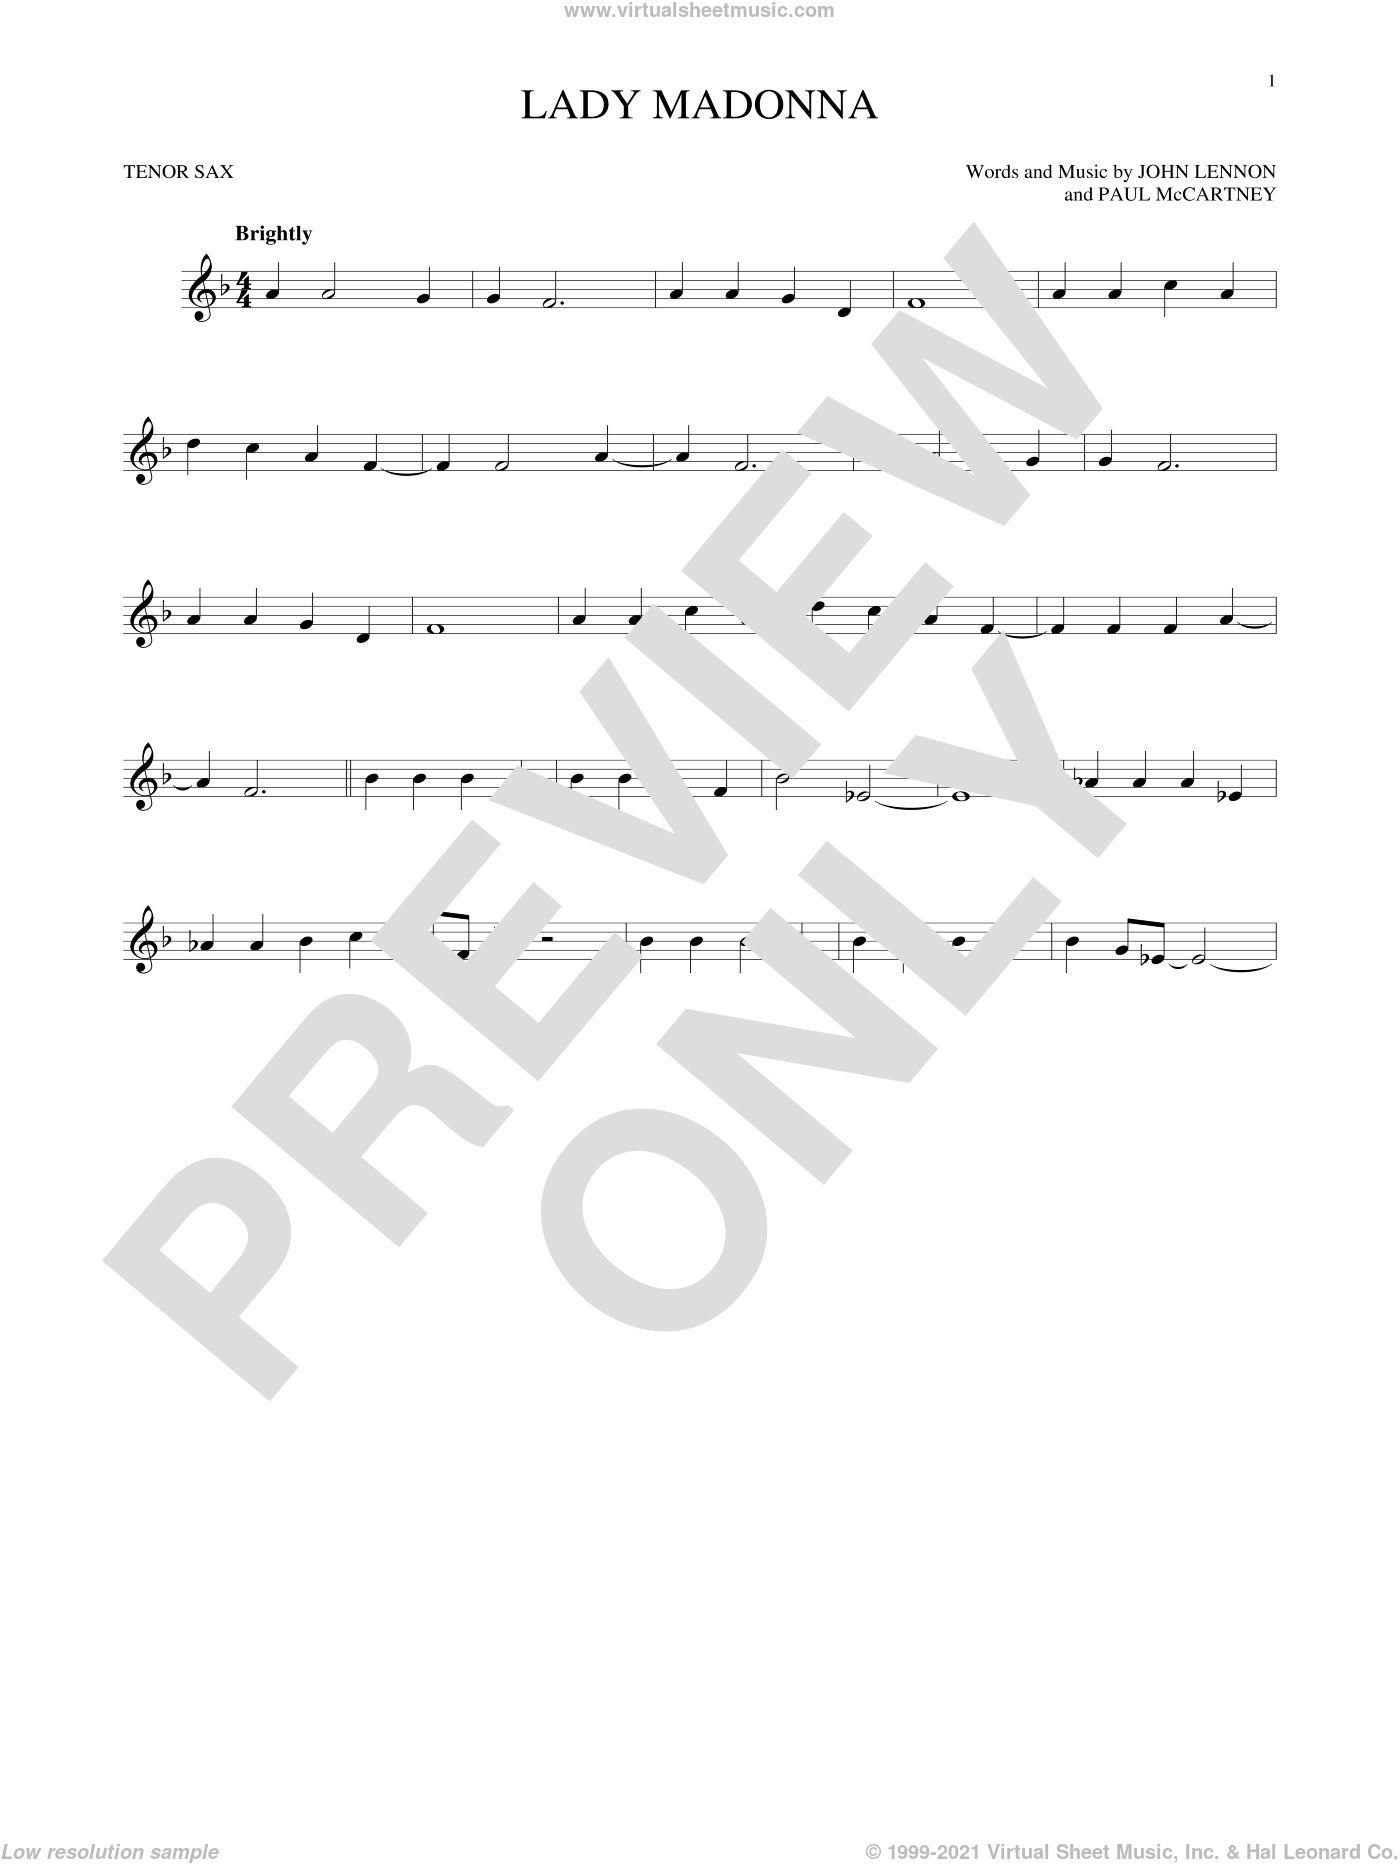 Lady Madonna sheet music for tenor saxophone solo by The Beatles, John Lennon and Paul McCartney, intermediate skill level